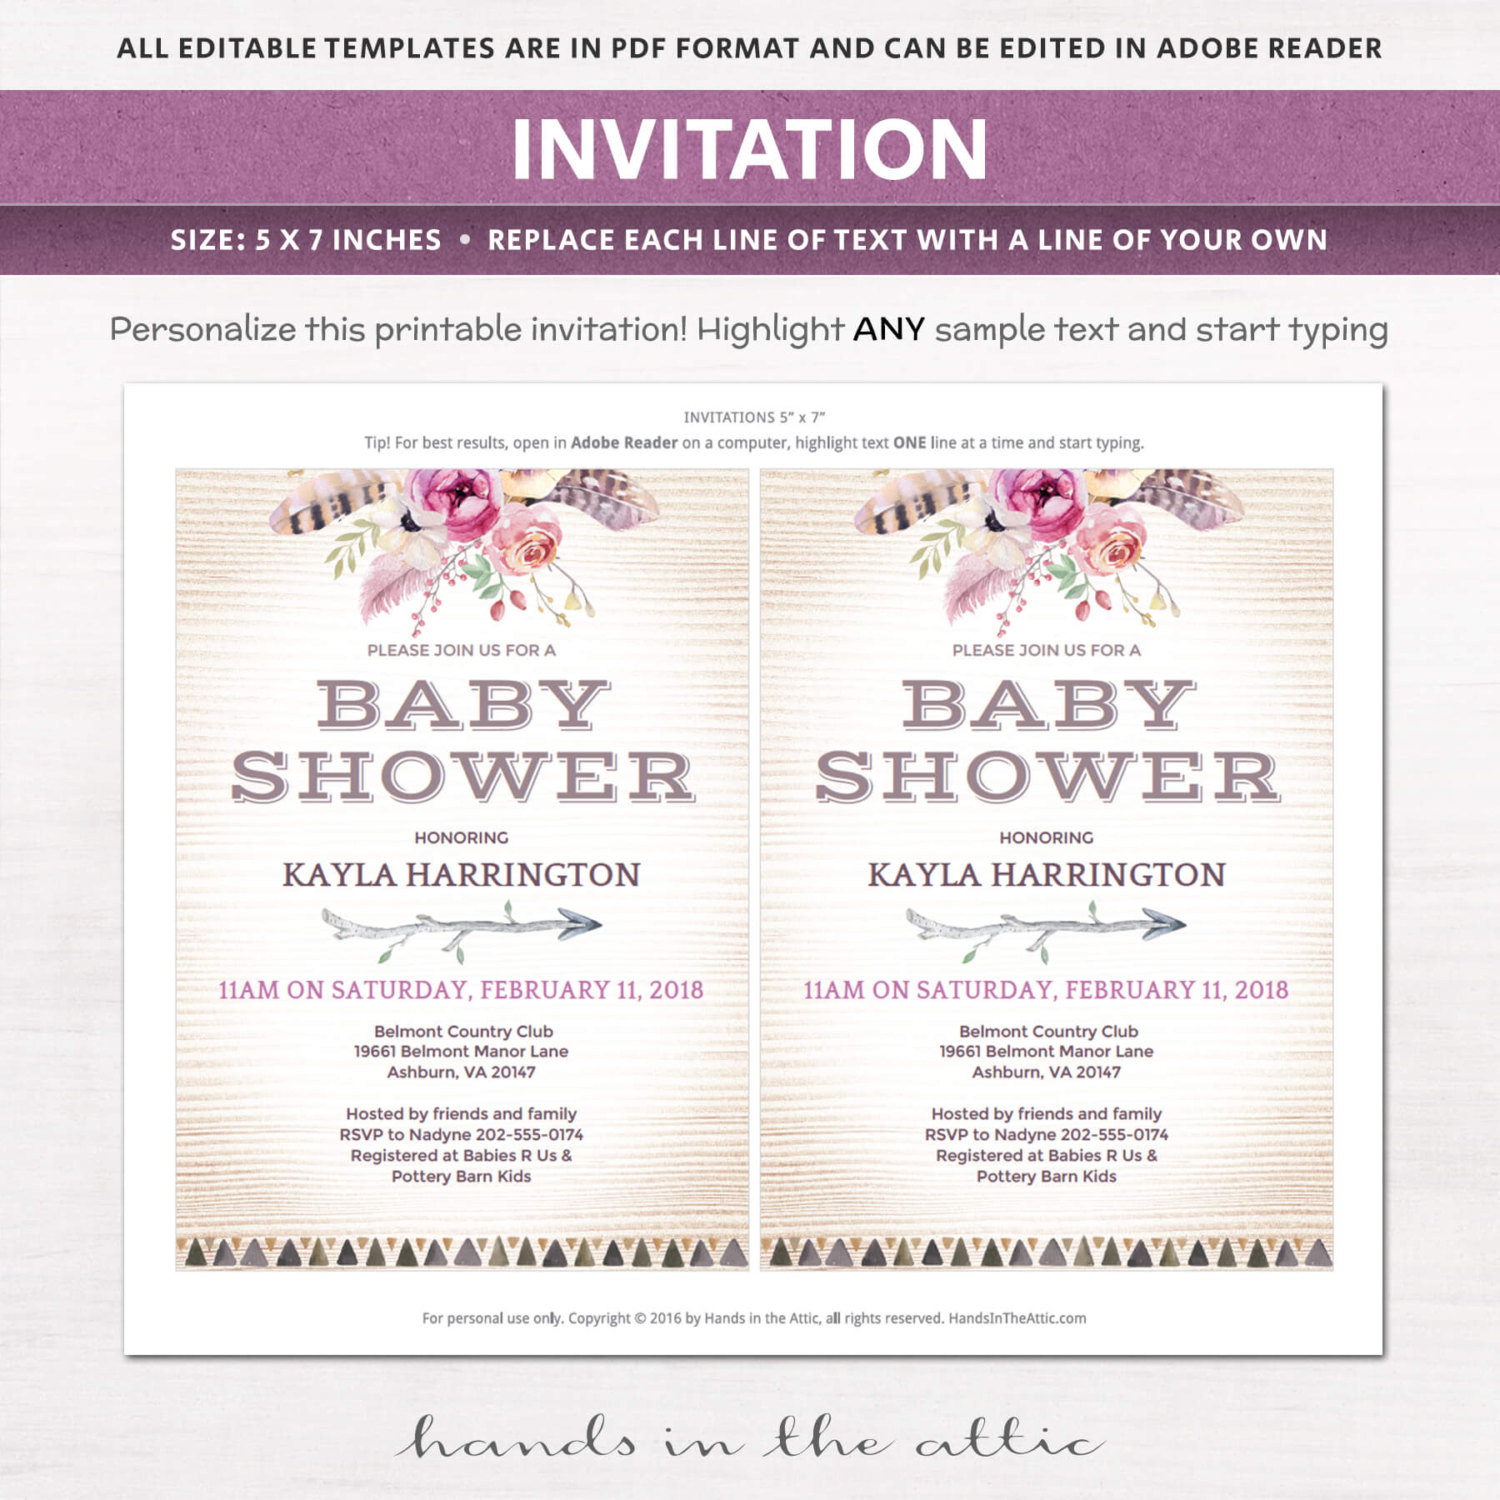 Diy Baby Shower Invitations Kits  Boho Baby Shower Invitation Kit